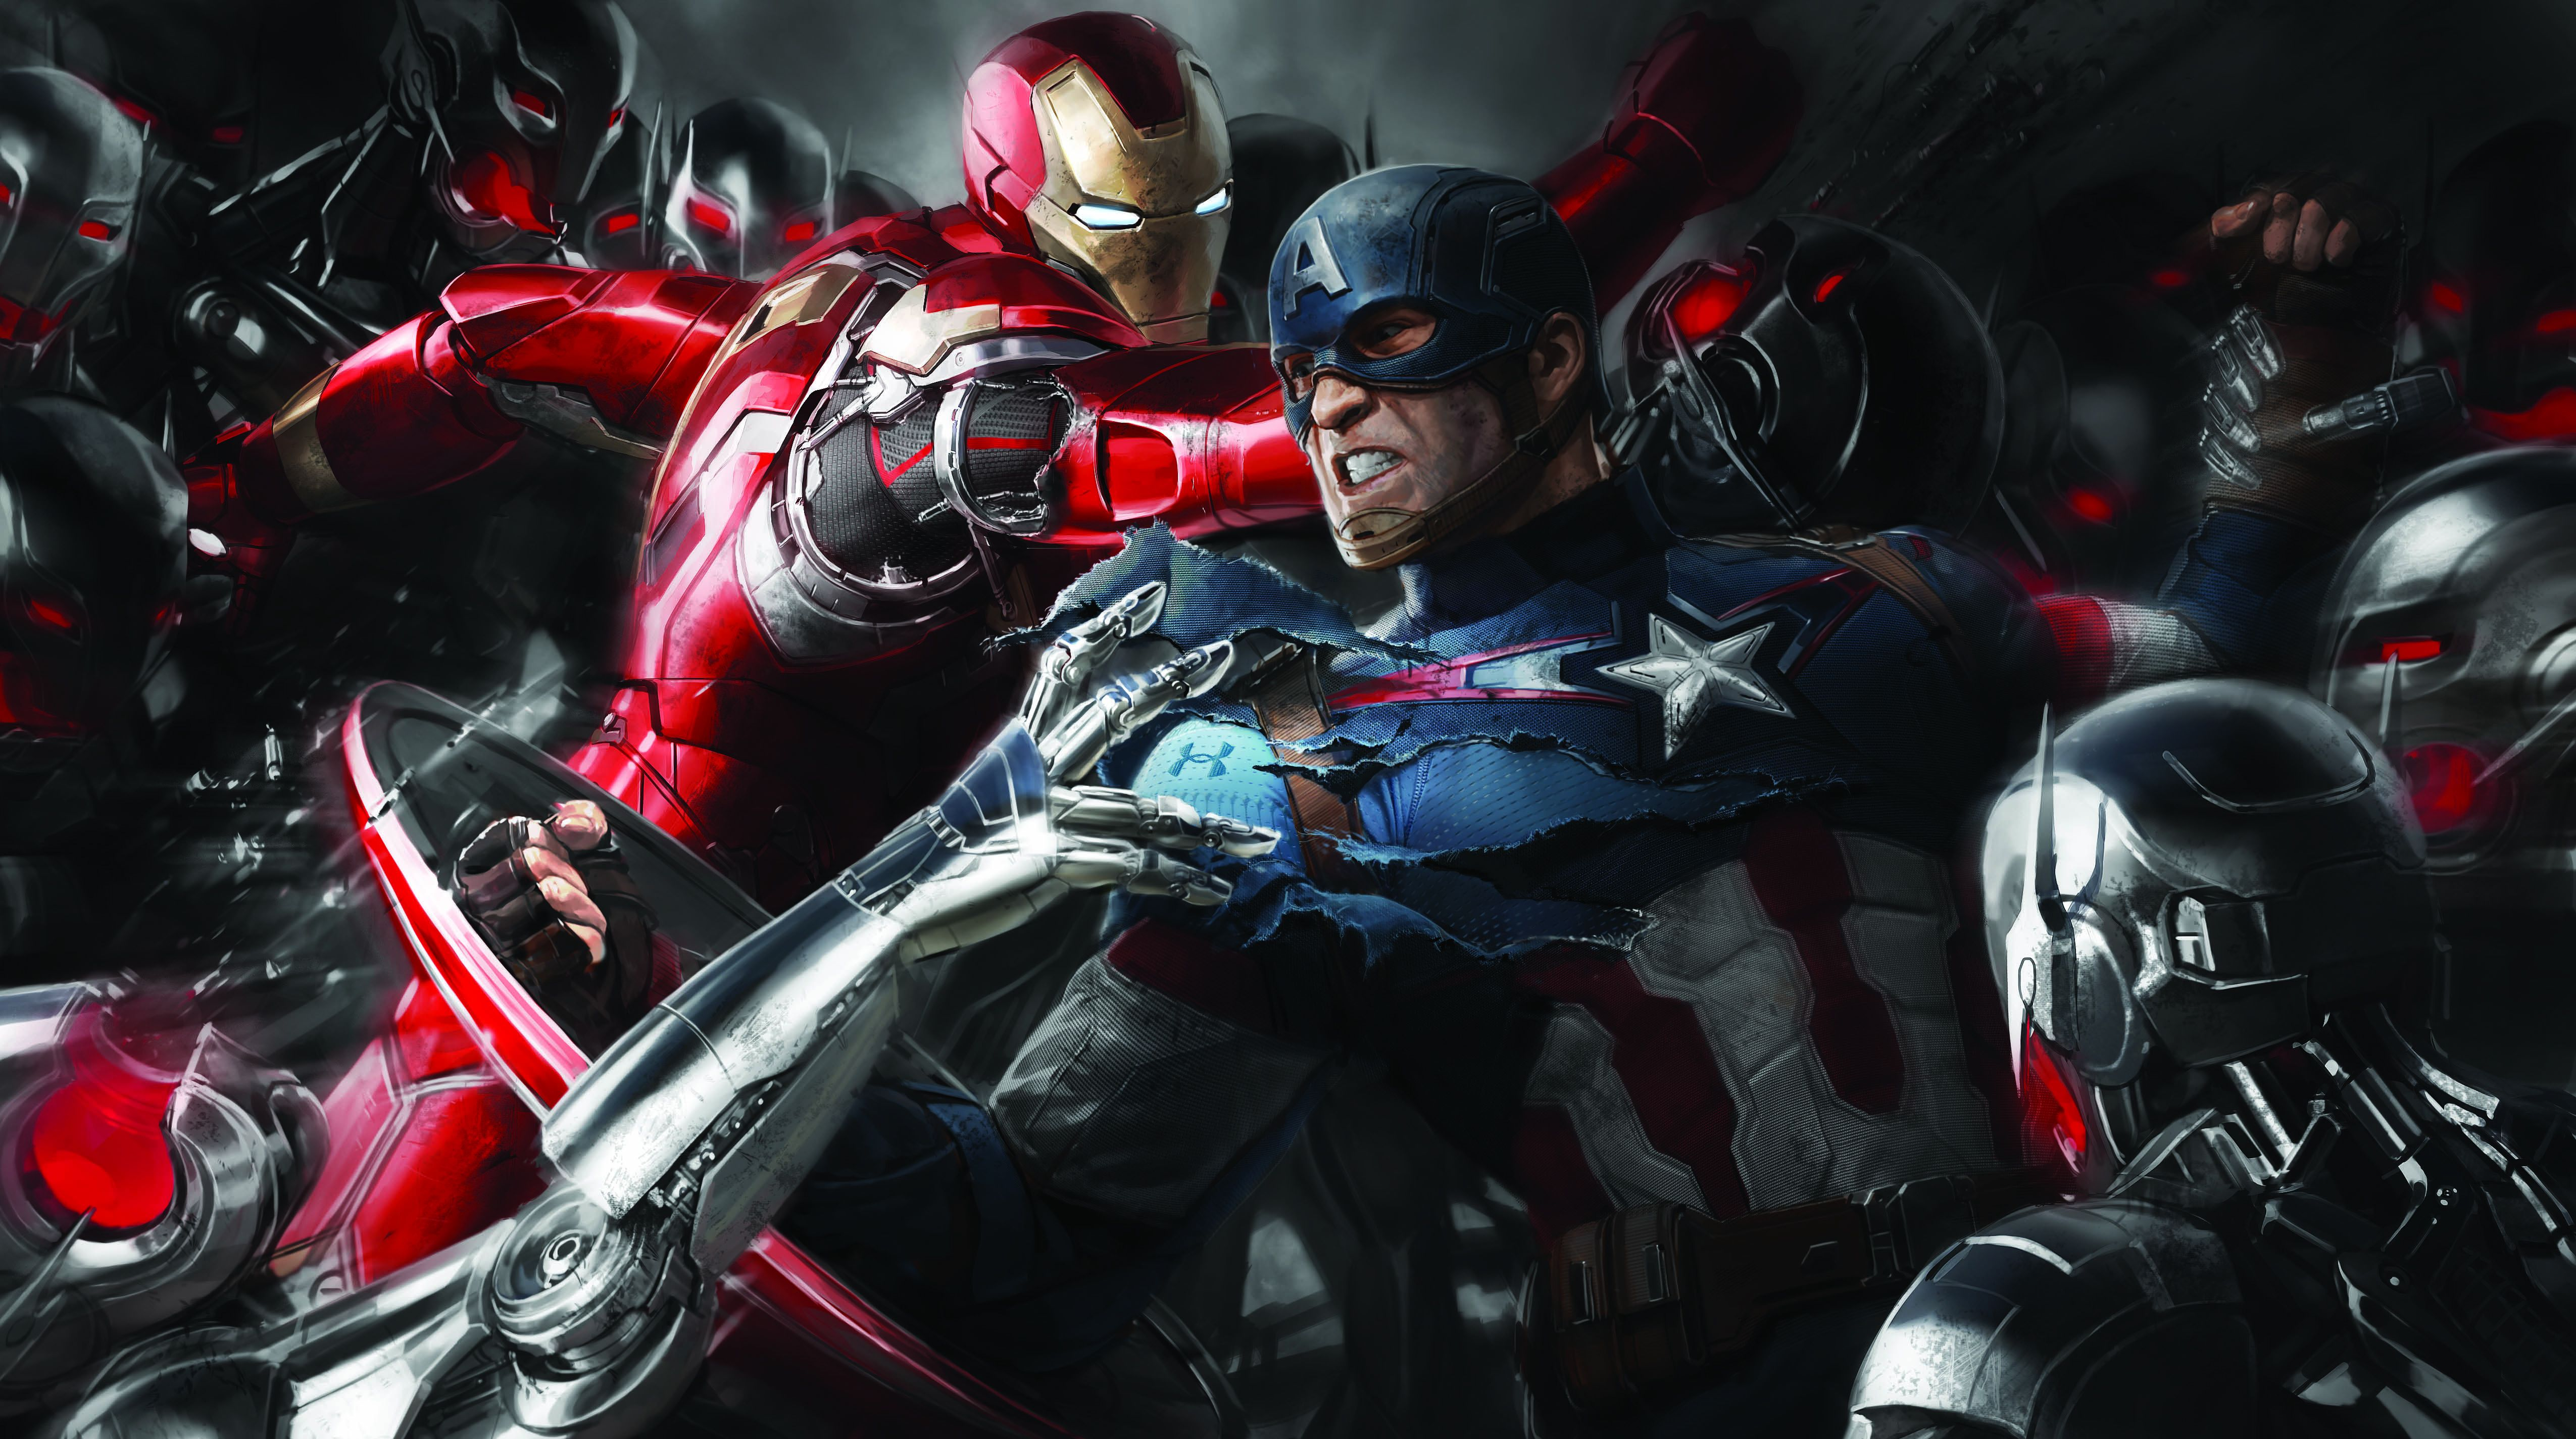 Wallpapers Iron Man, Captain America, Civil War, Concept Art, Movies,